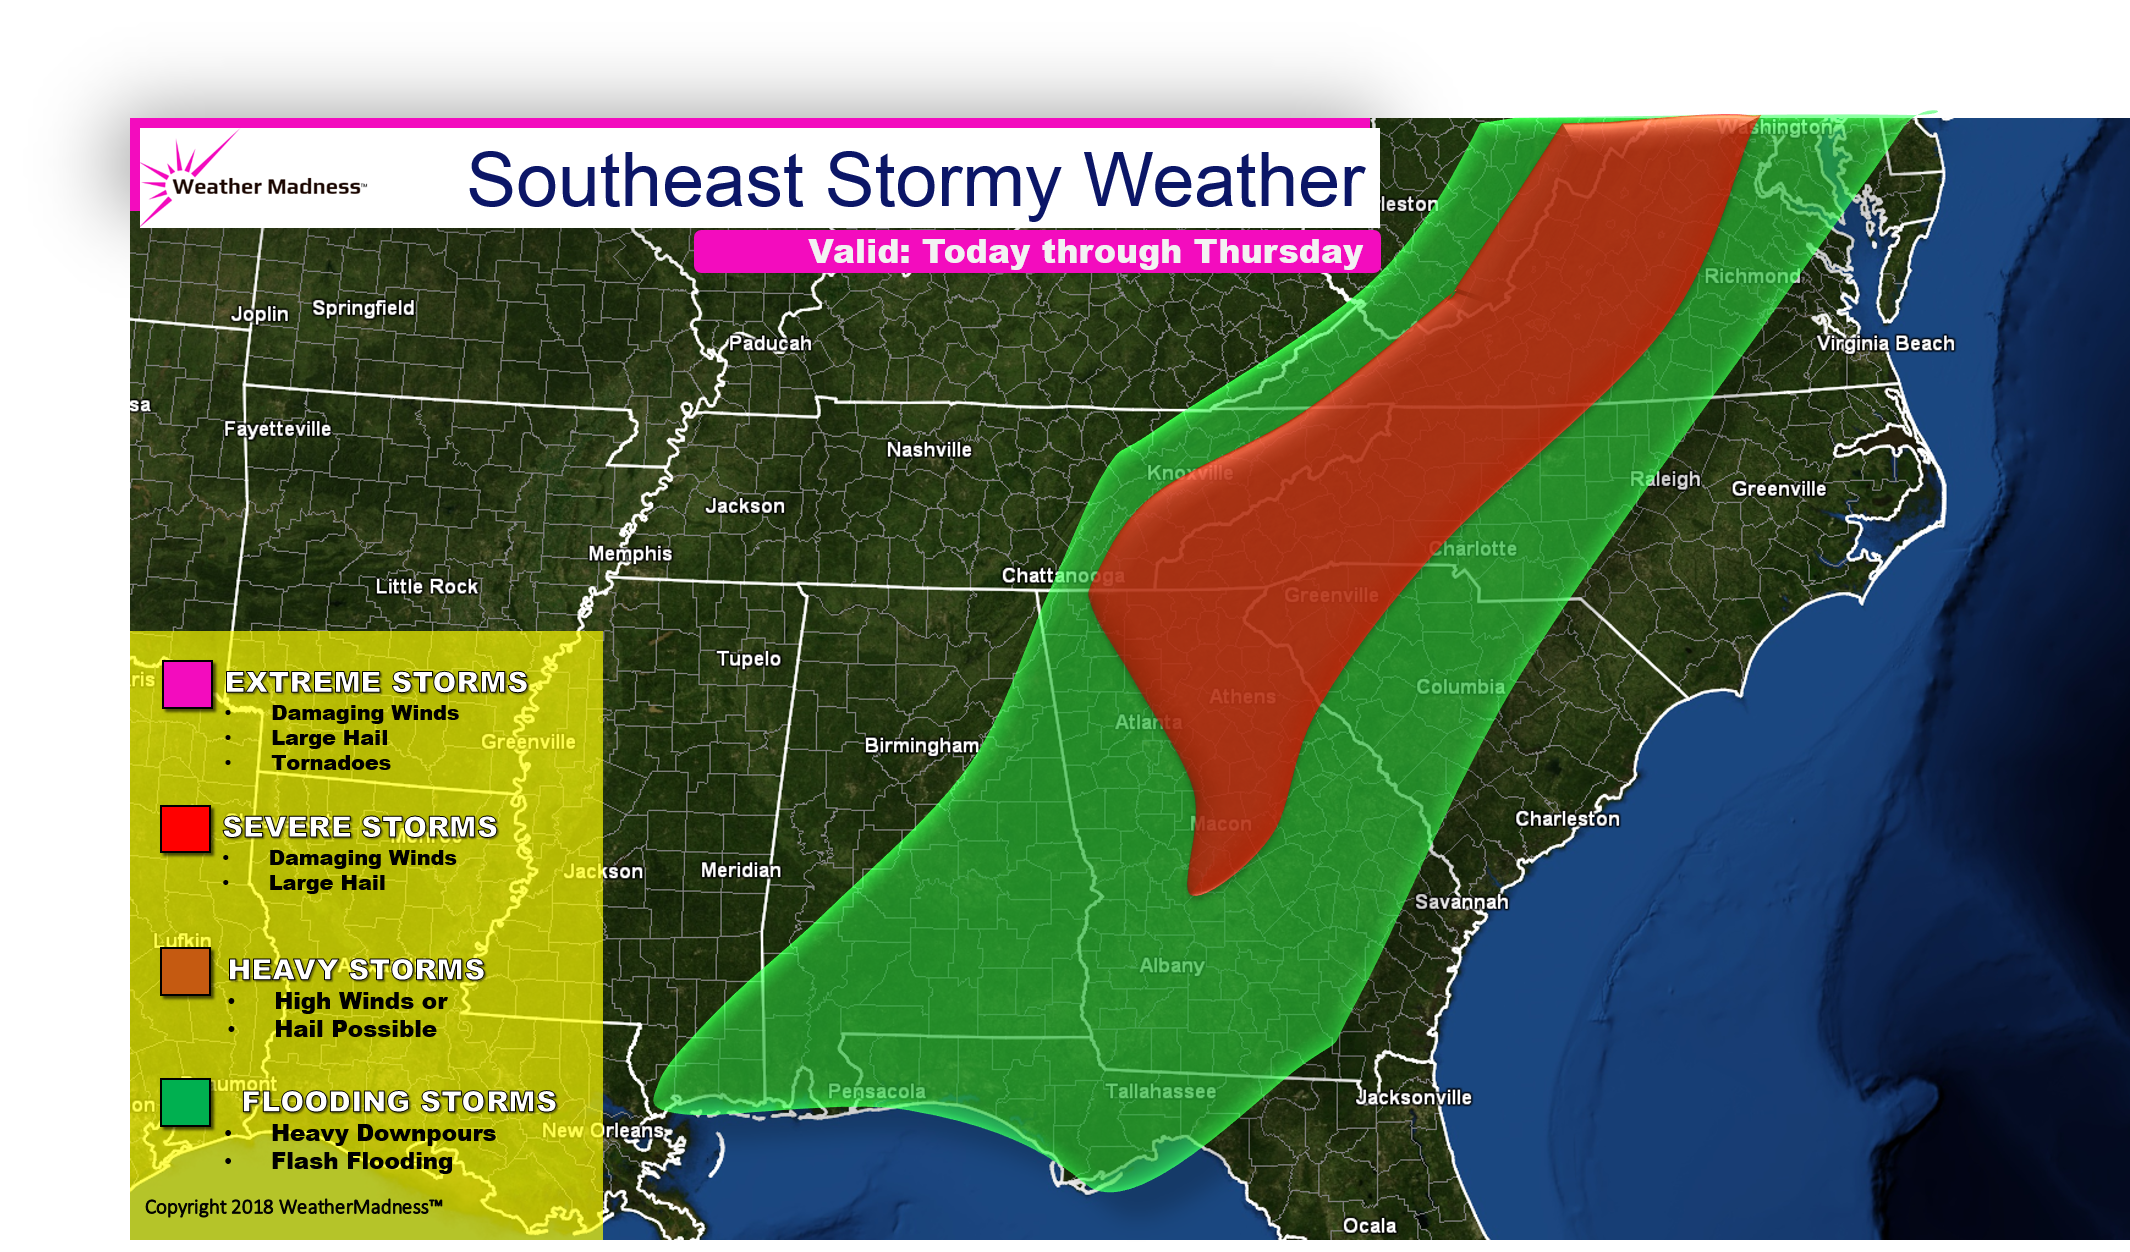 Southeast Storms Bring Wind Damage and Flooding